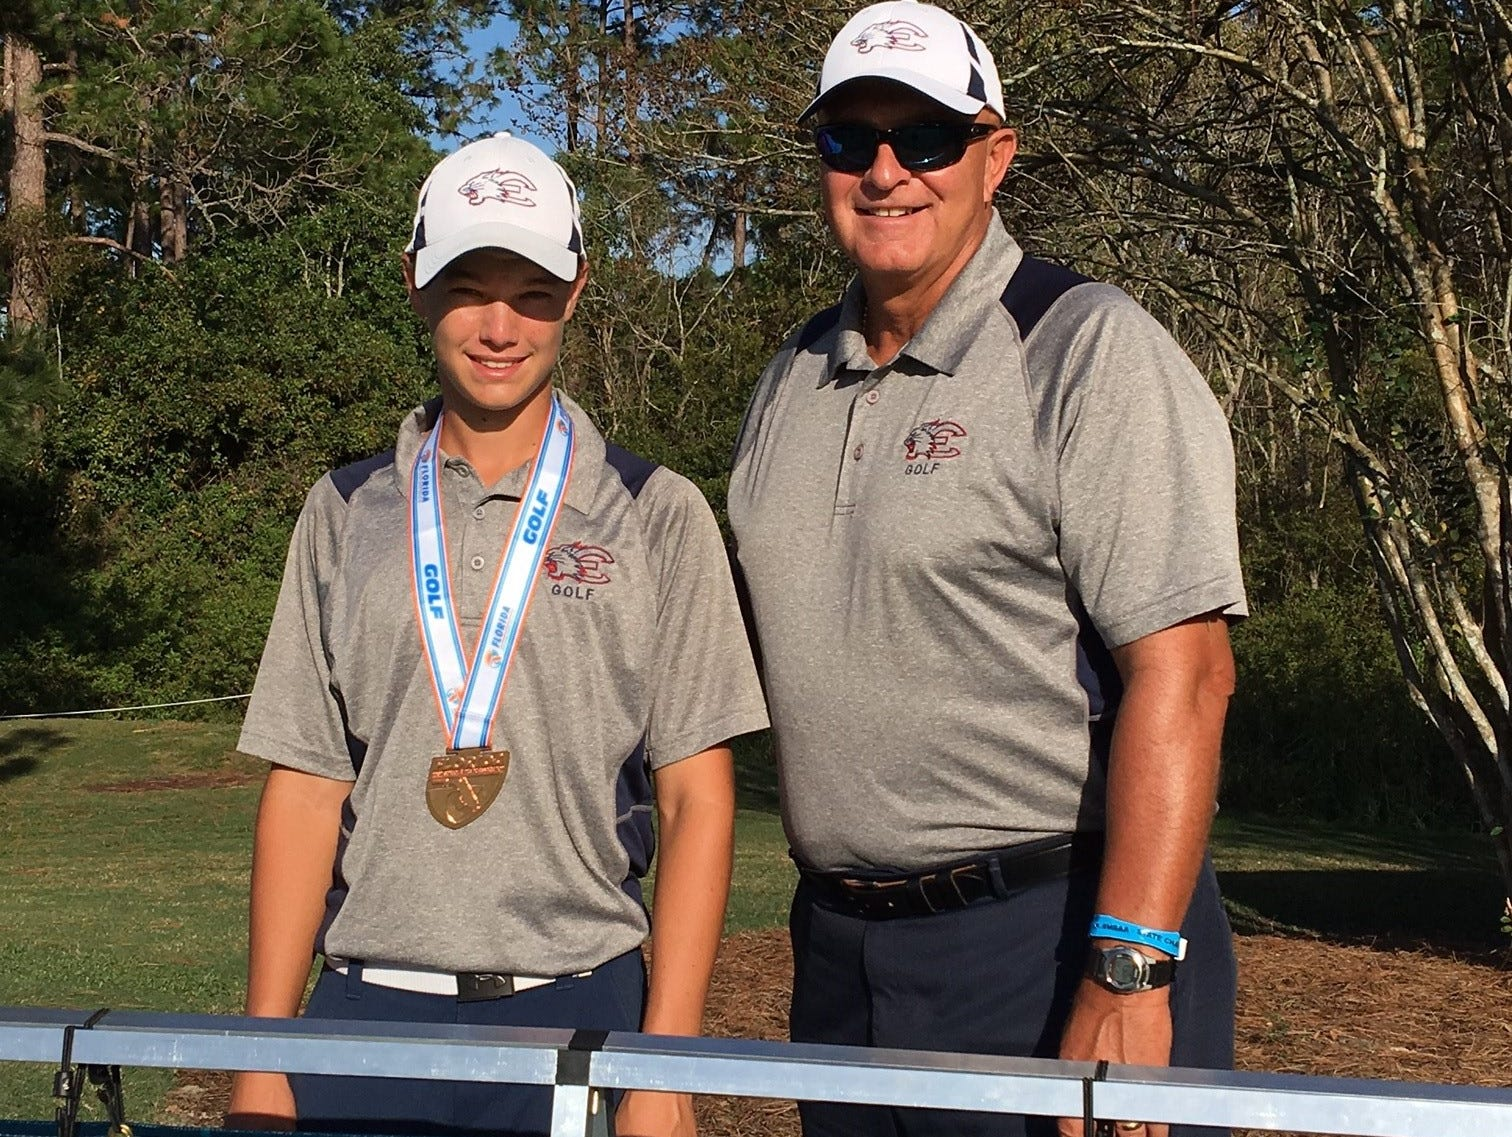 Estero's Luke Farmer and Wildcat head coach Bruce Buchla after Farmer tied for third overall at the 2A FHSAA Boys' Golf Championships at Mission Inn Resort in Howey-in-the-Hills, FL.